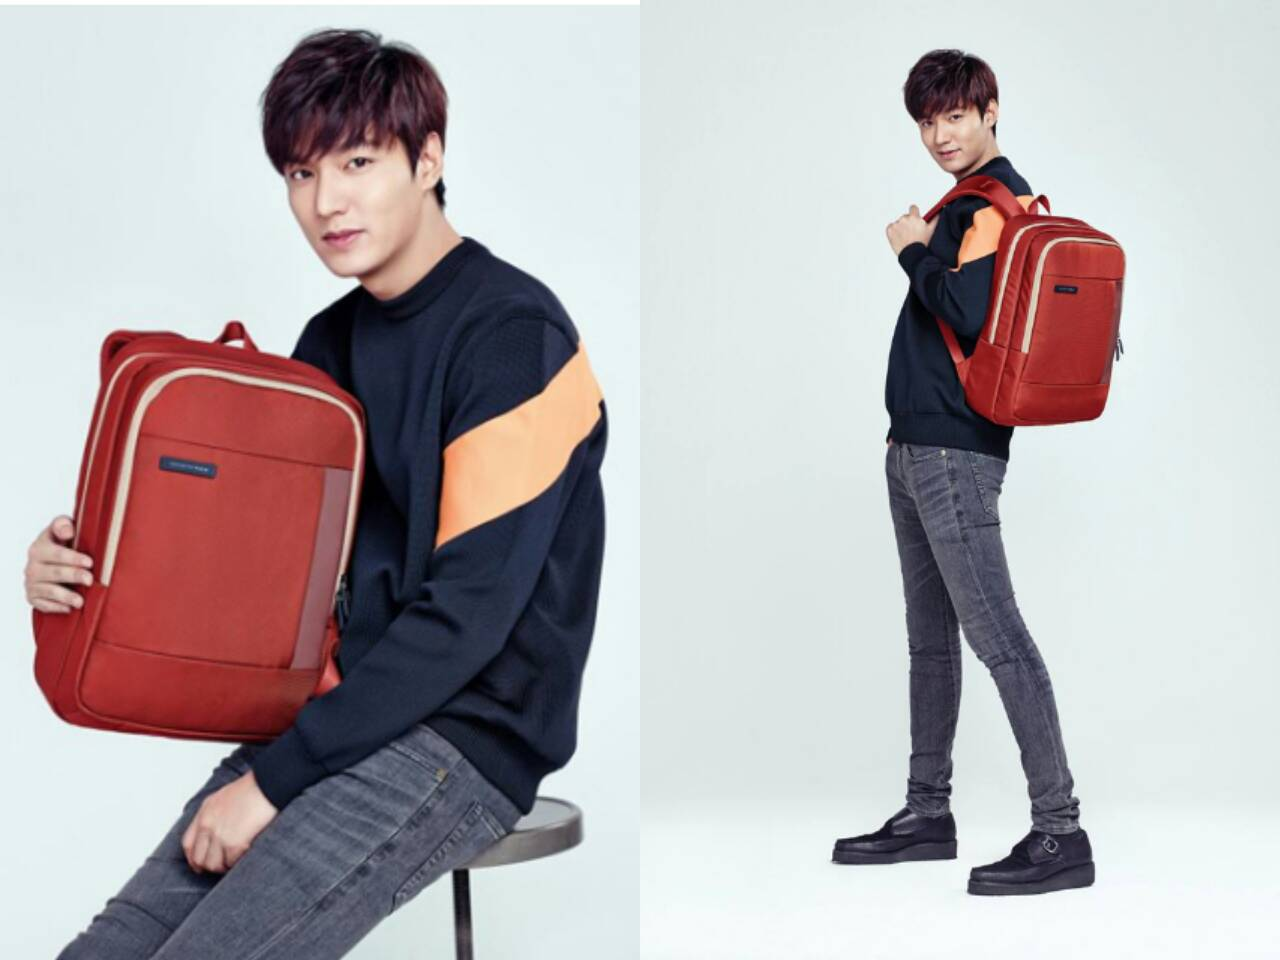 Lee Min Ho Samsonite (10)